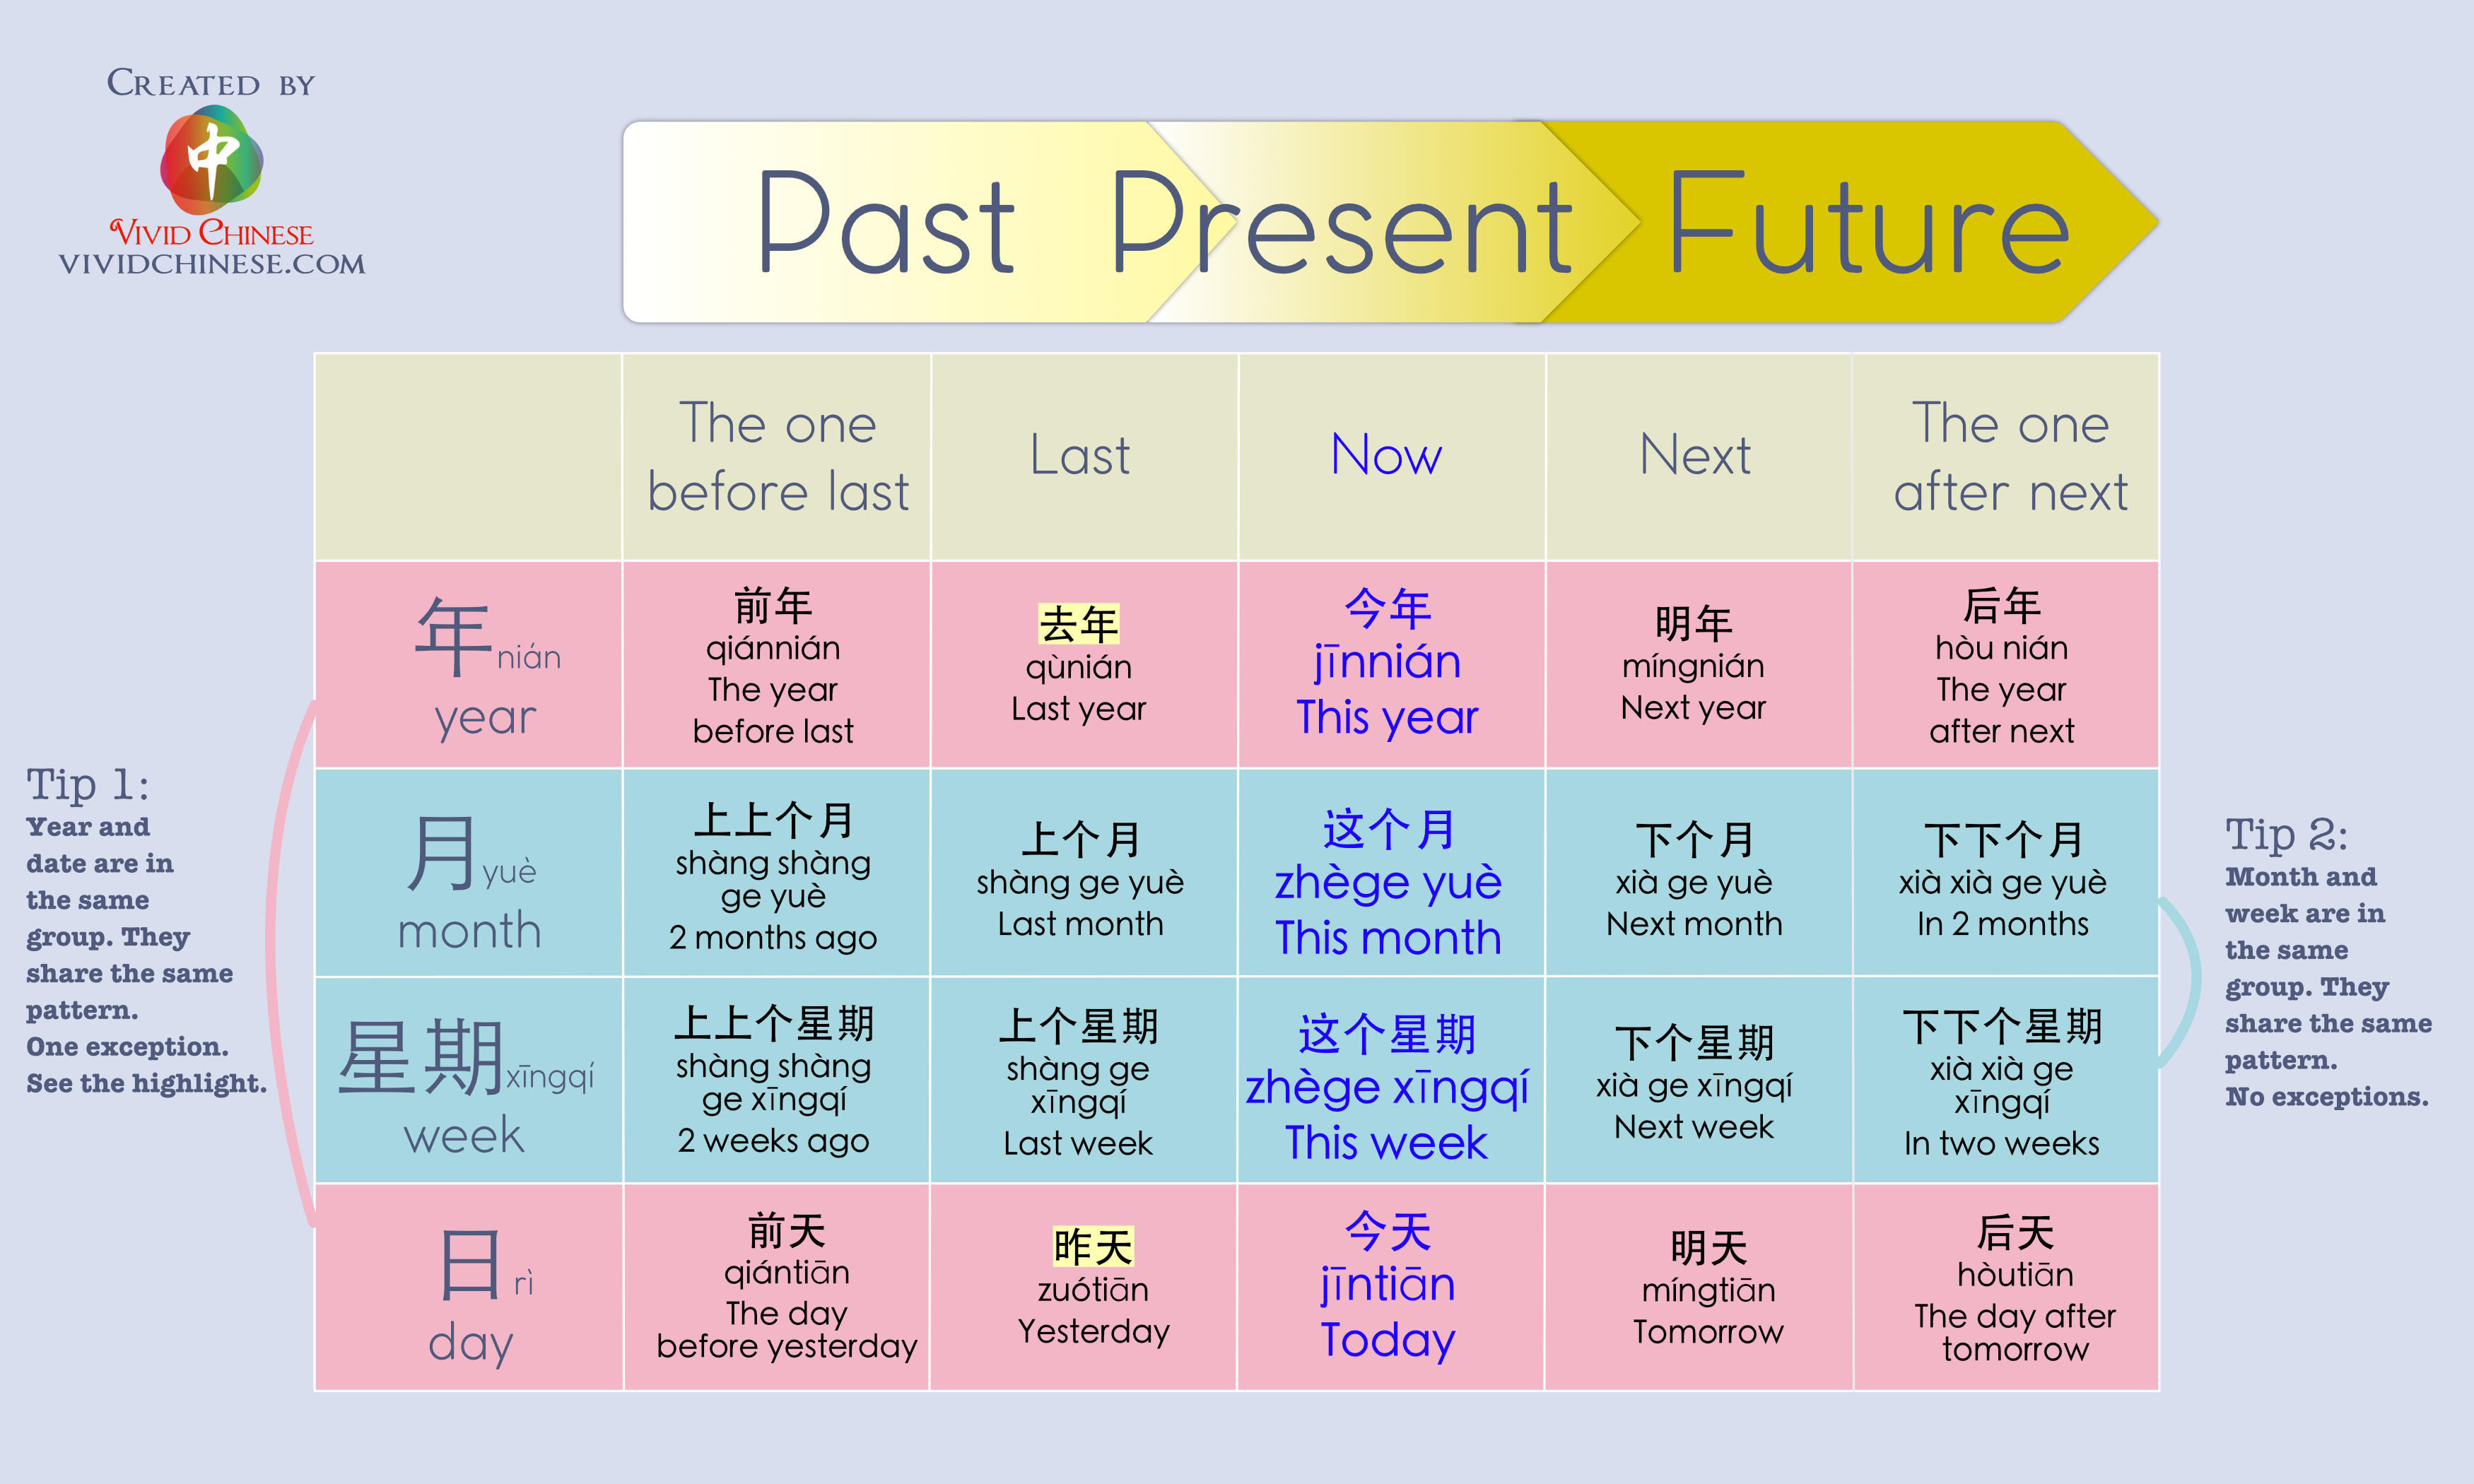 Past-Present-Future time in Chinese